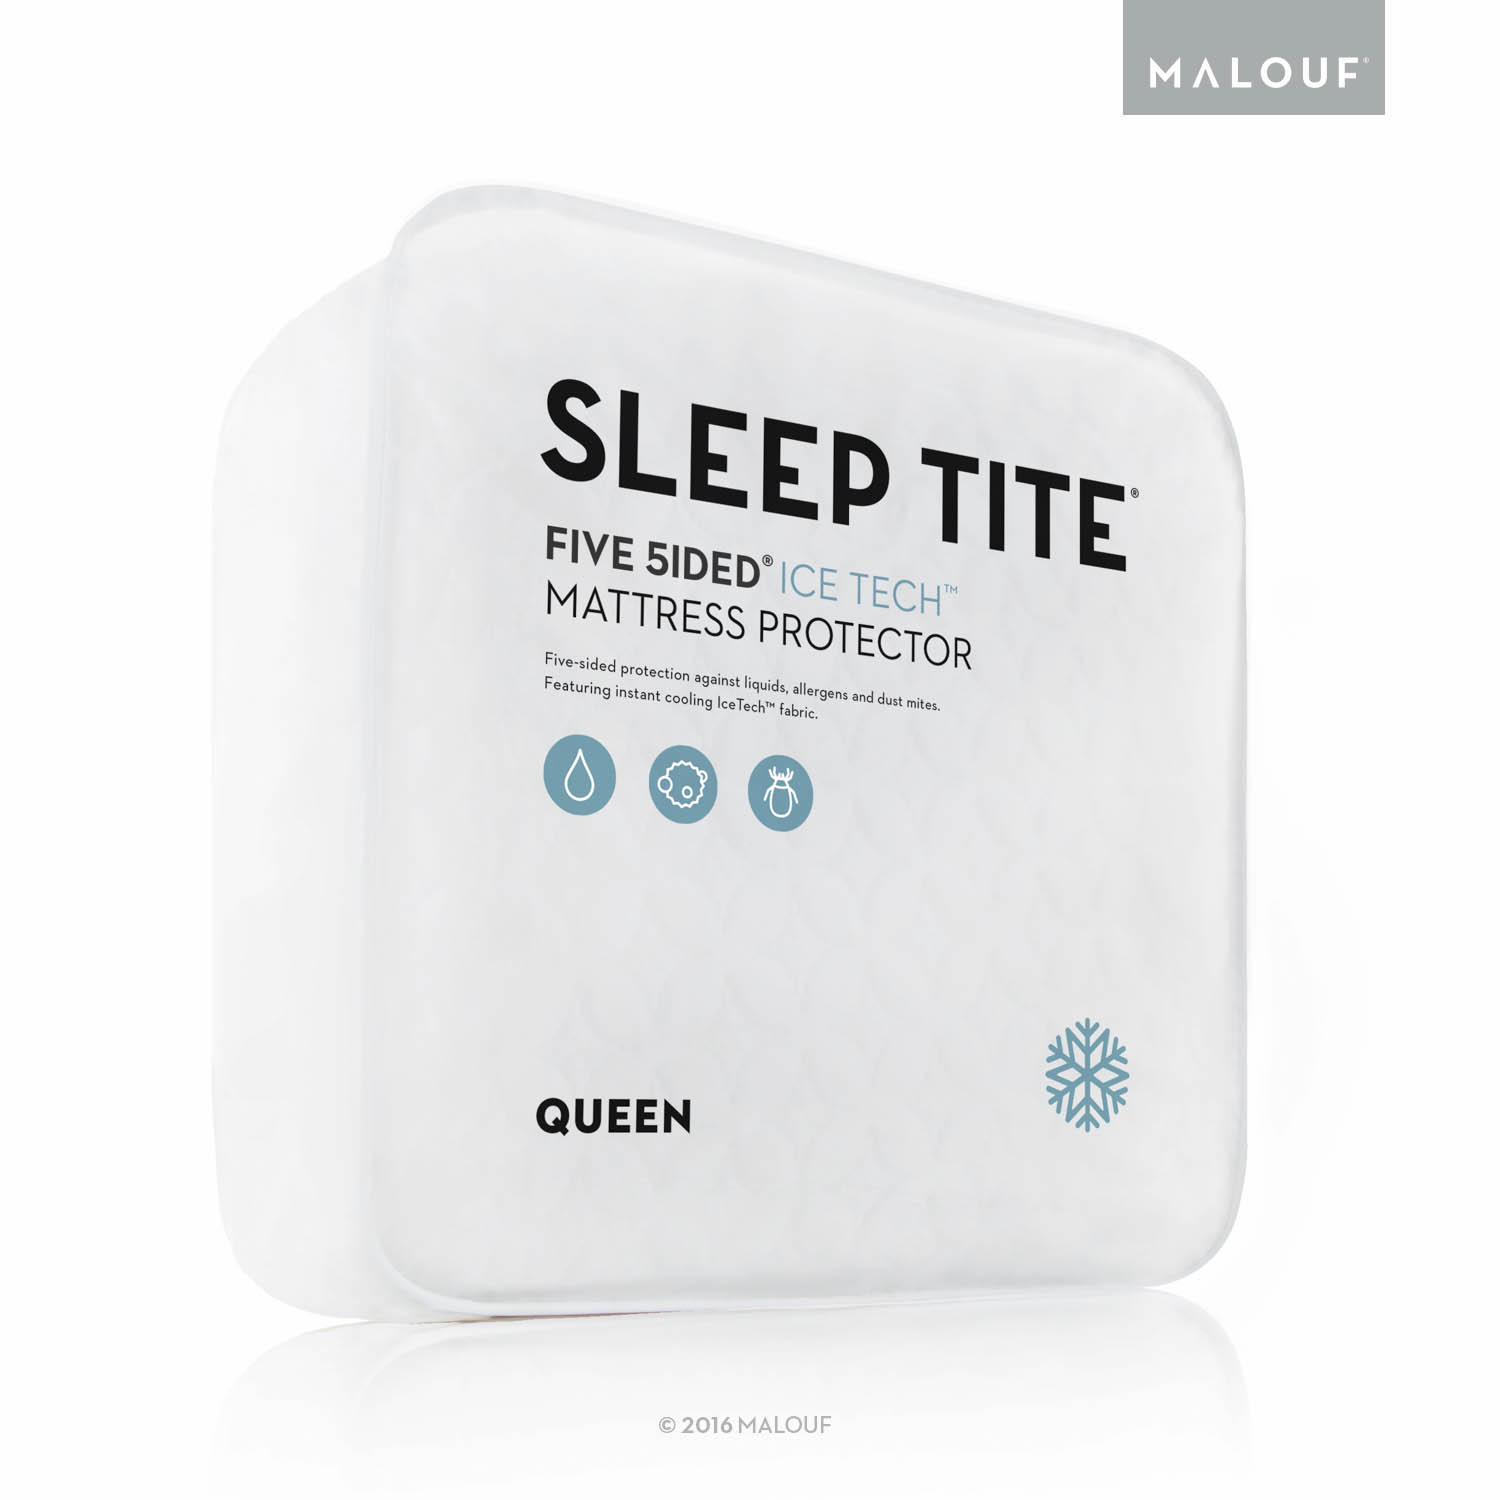 Malouf Sleep Tite IceTech Mattress Protector - SLICTT5P